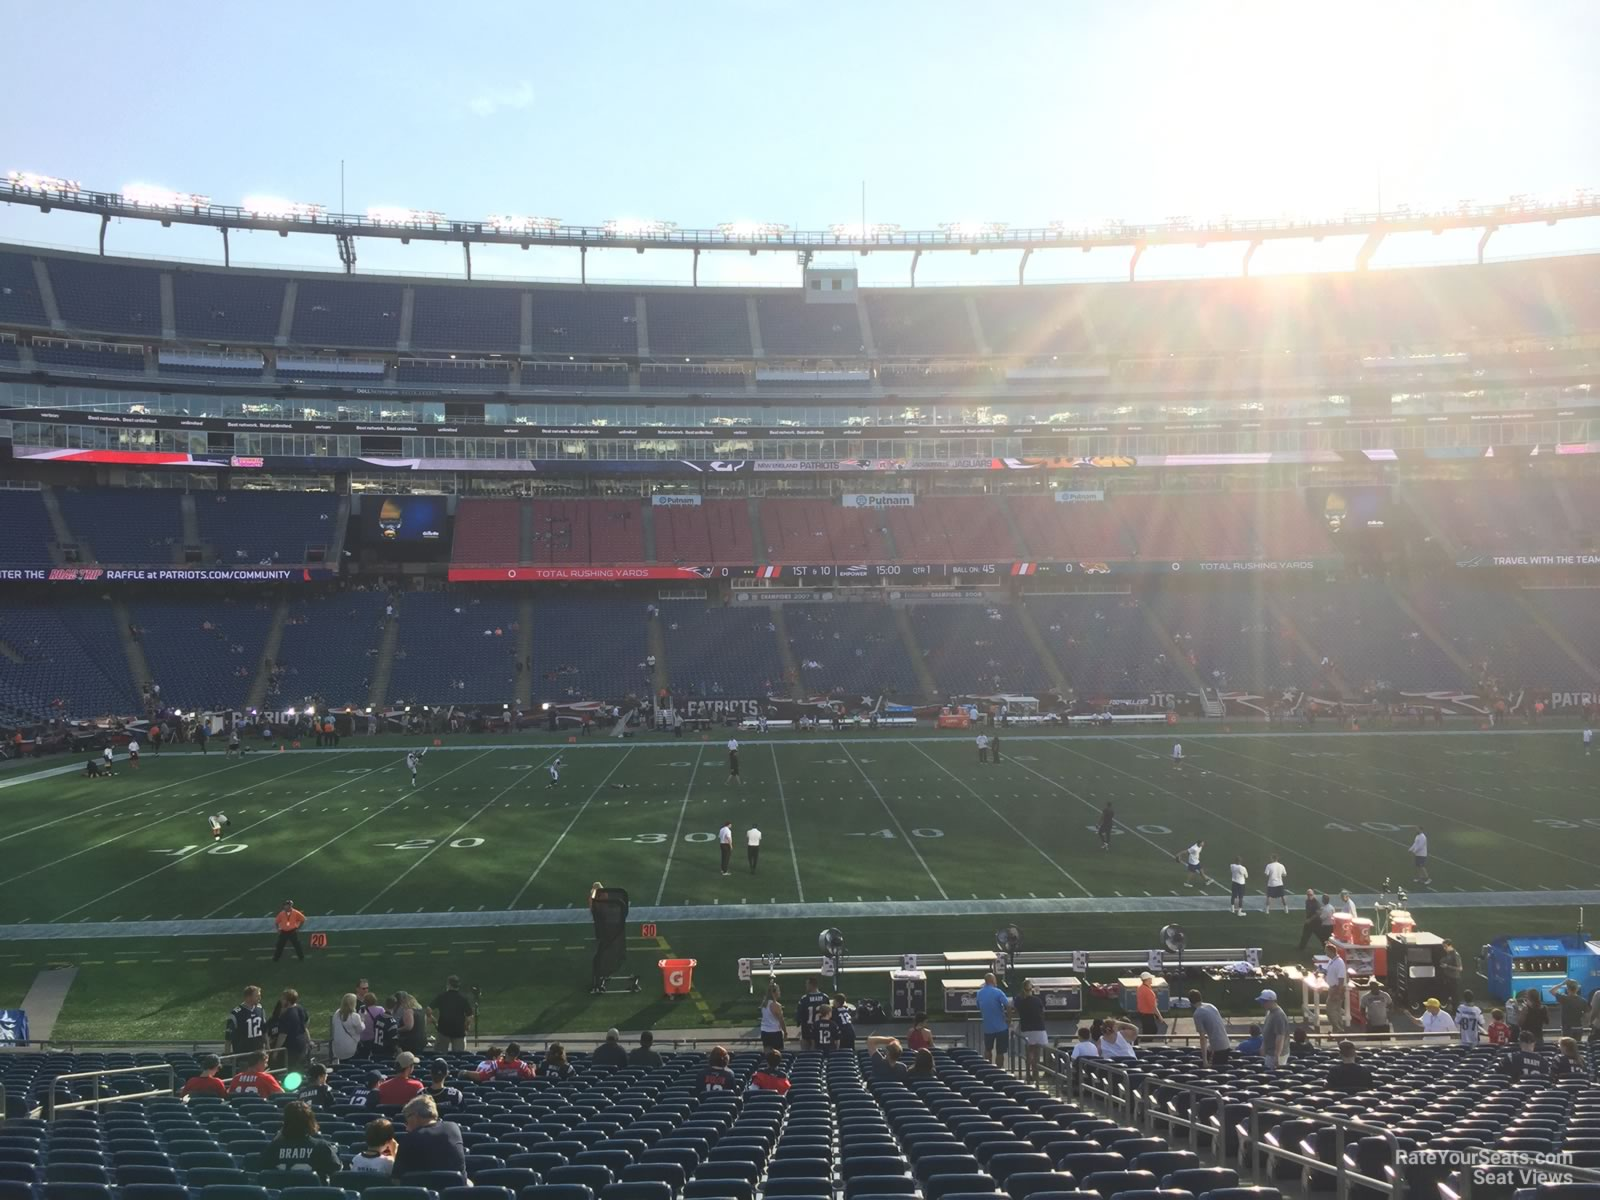 New England Patriots Seat View for Gillette Stadium Section 111, Row 29